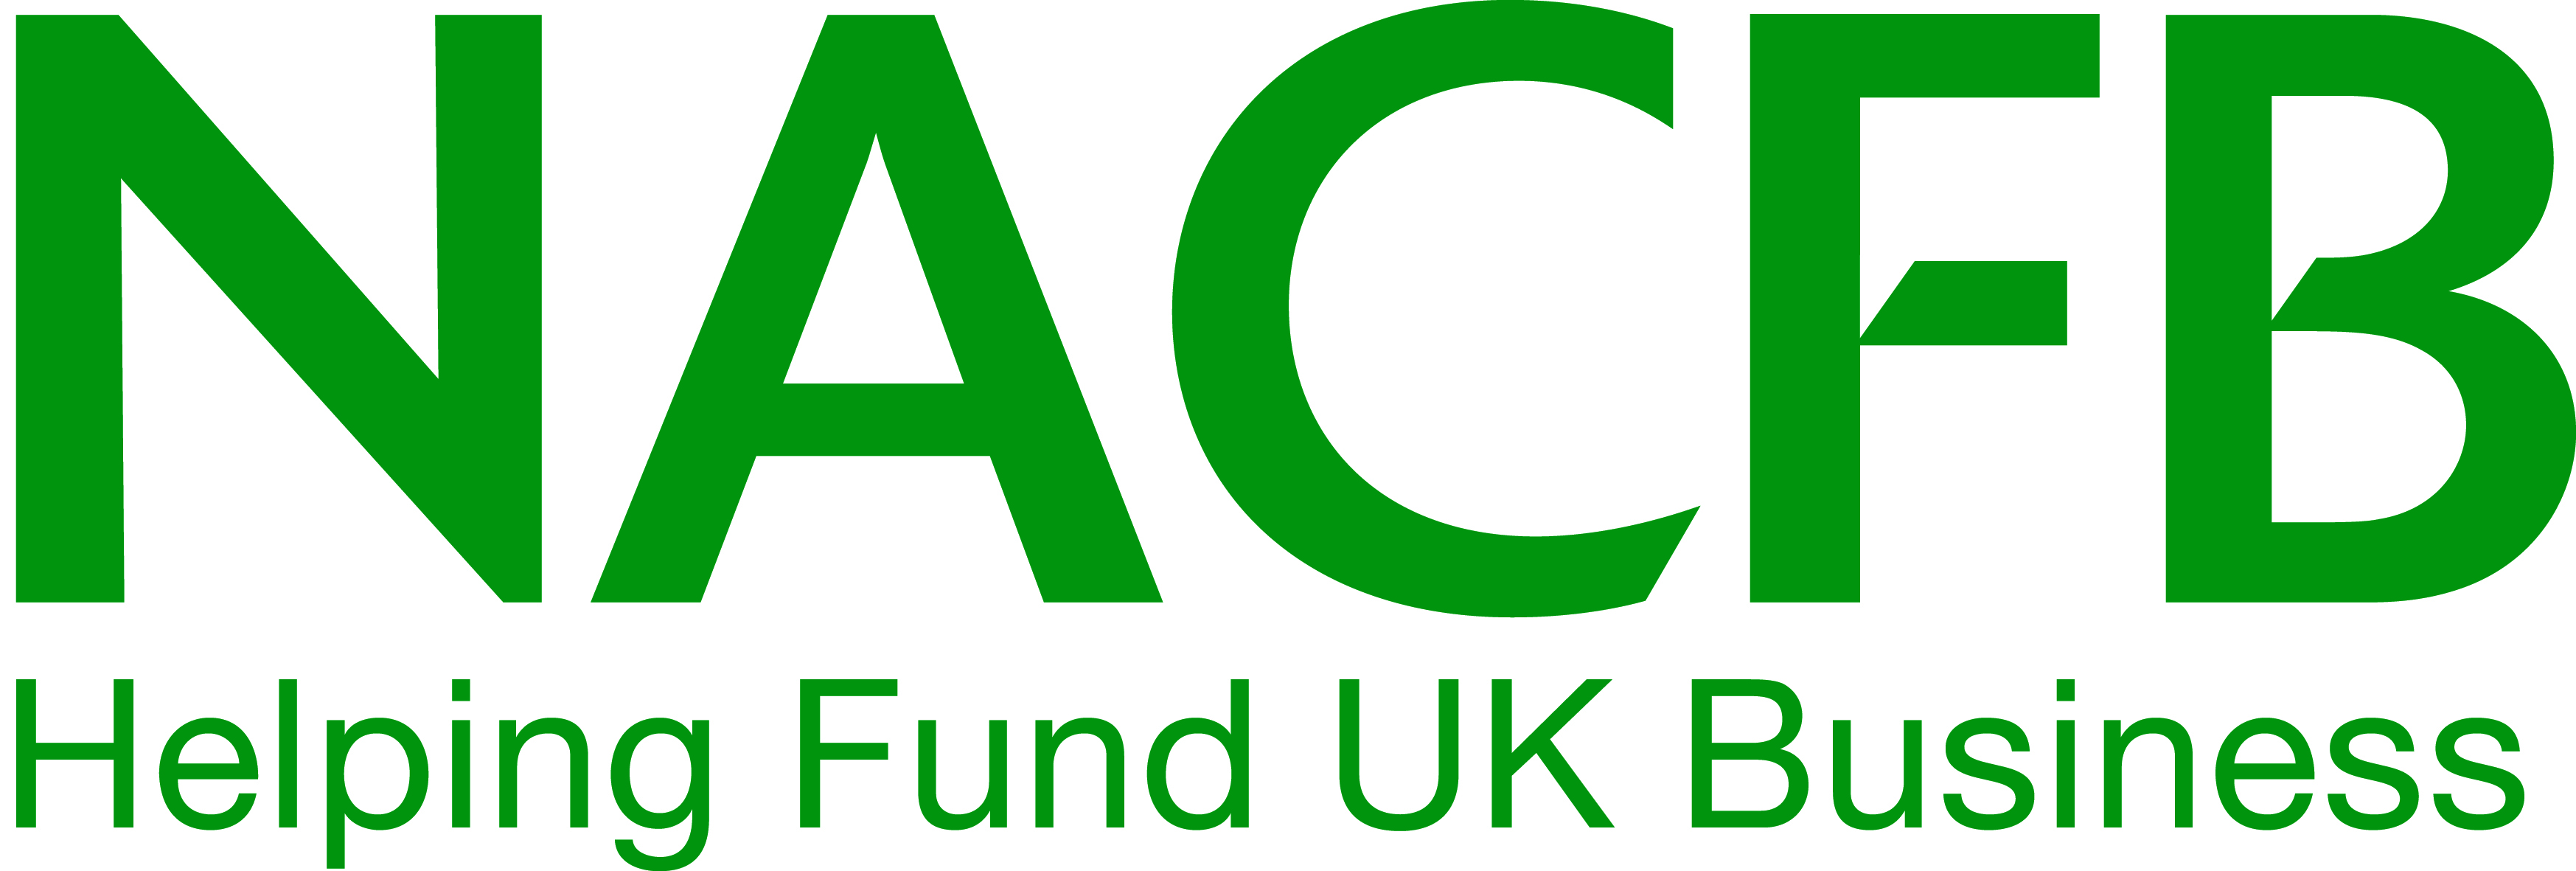 Mortgage & Finance Arena are members of the National Association for Commercial Finance Brokers